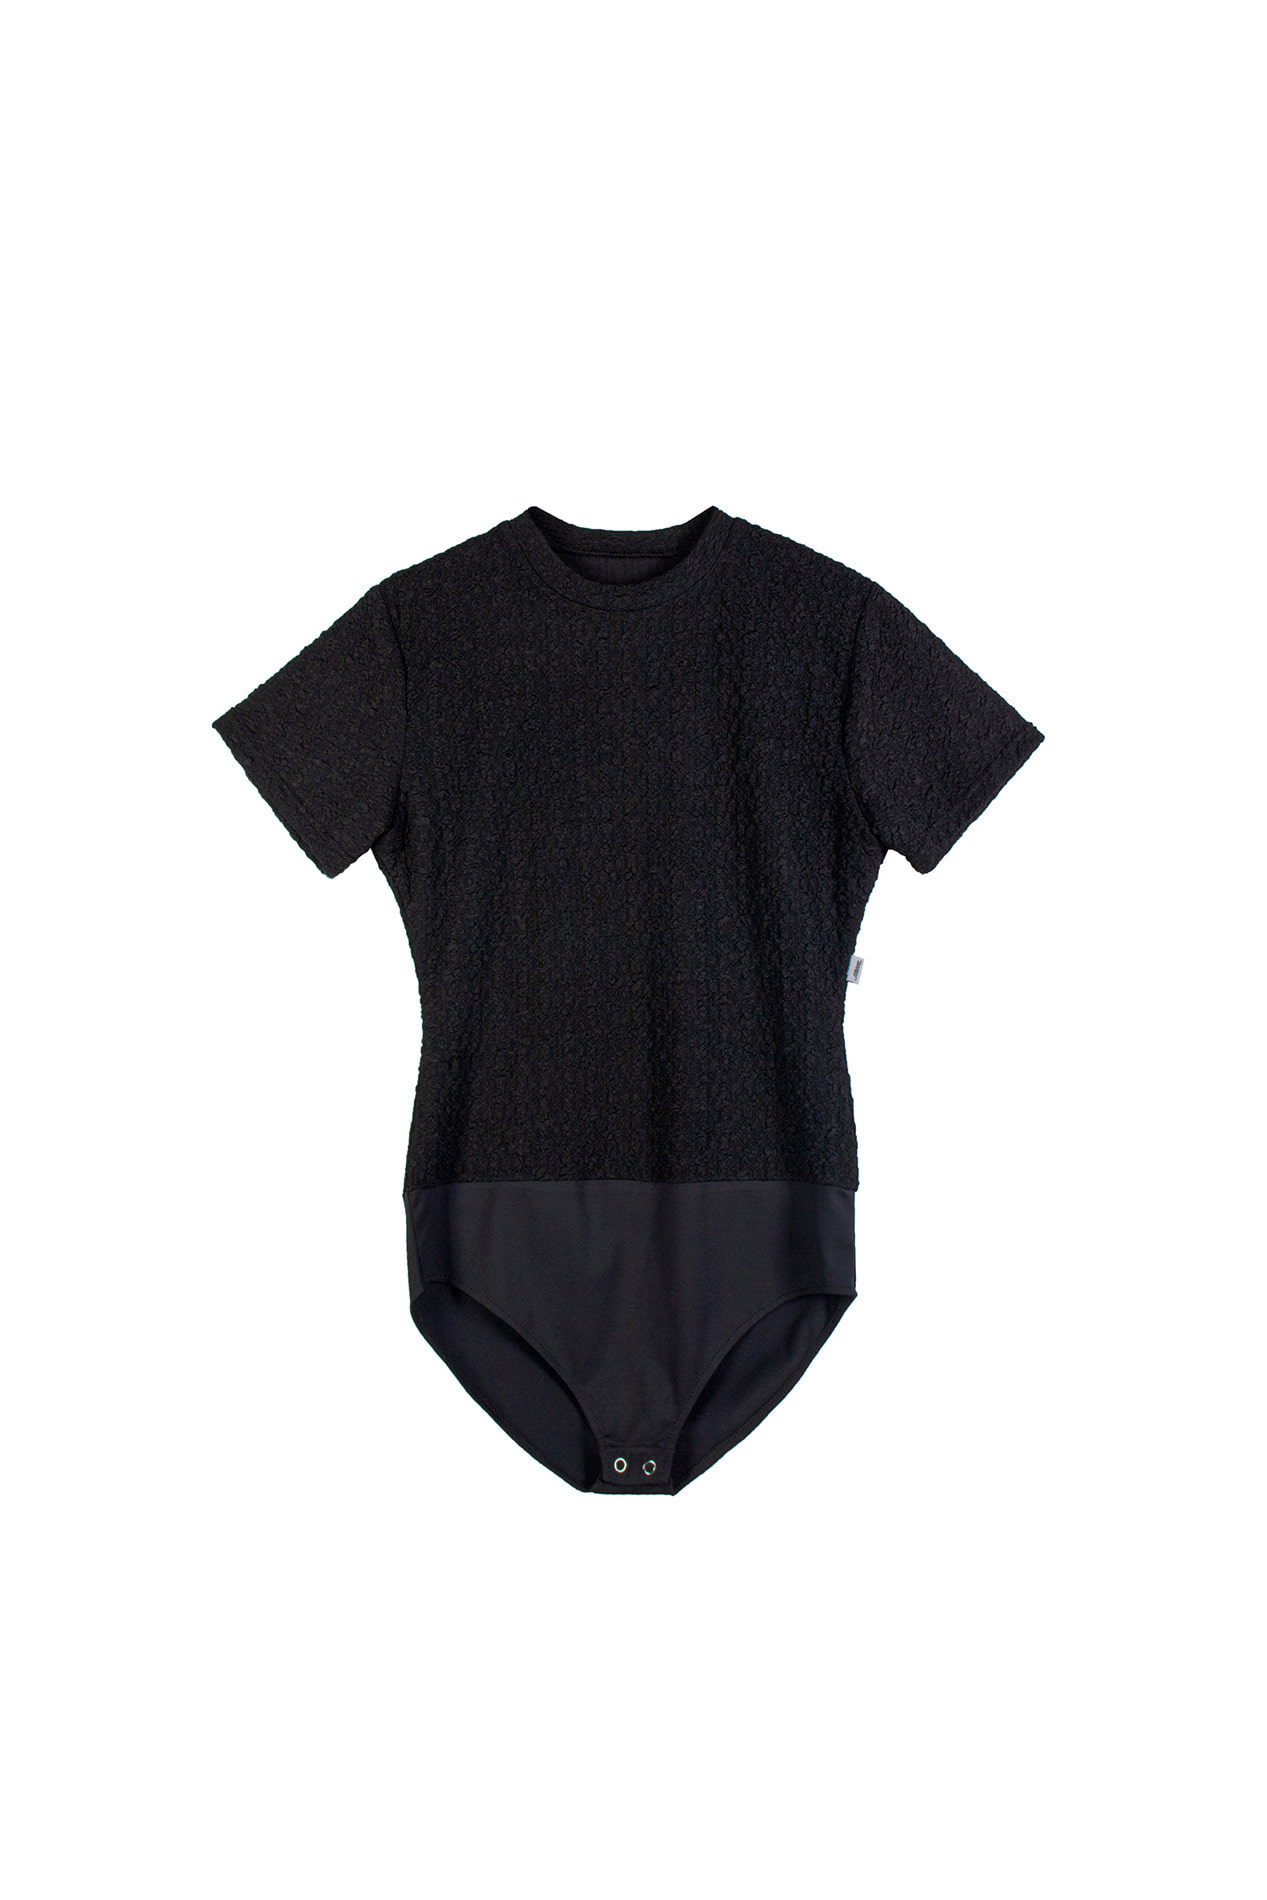 Textured Bodysuit (black)